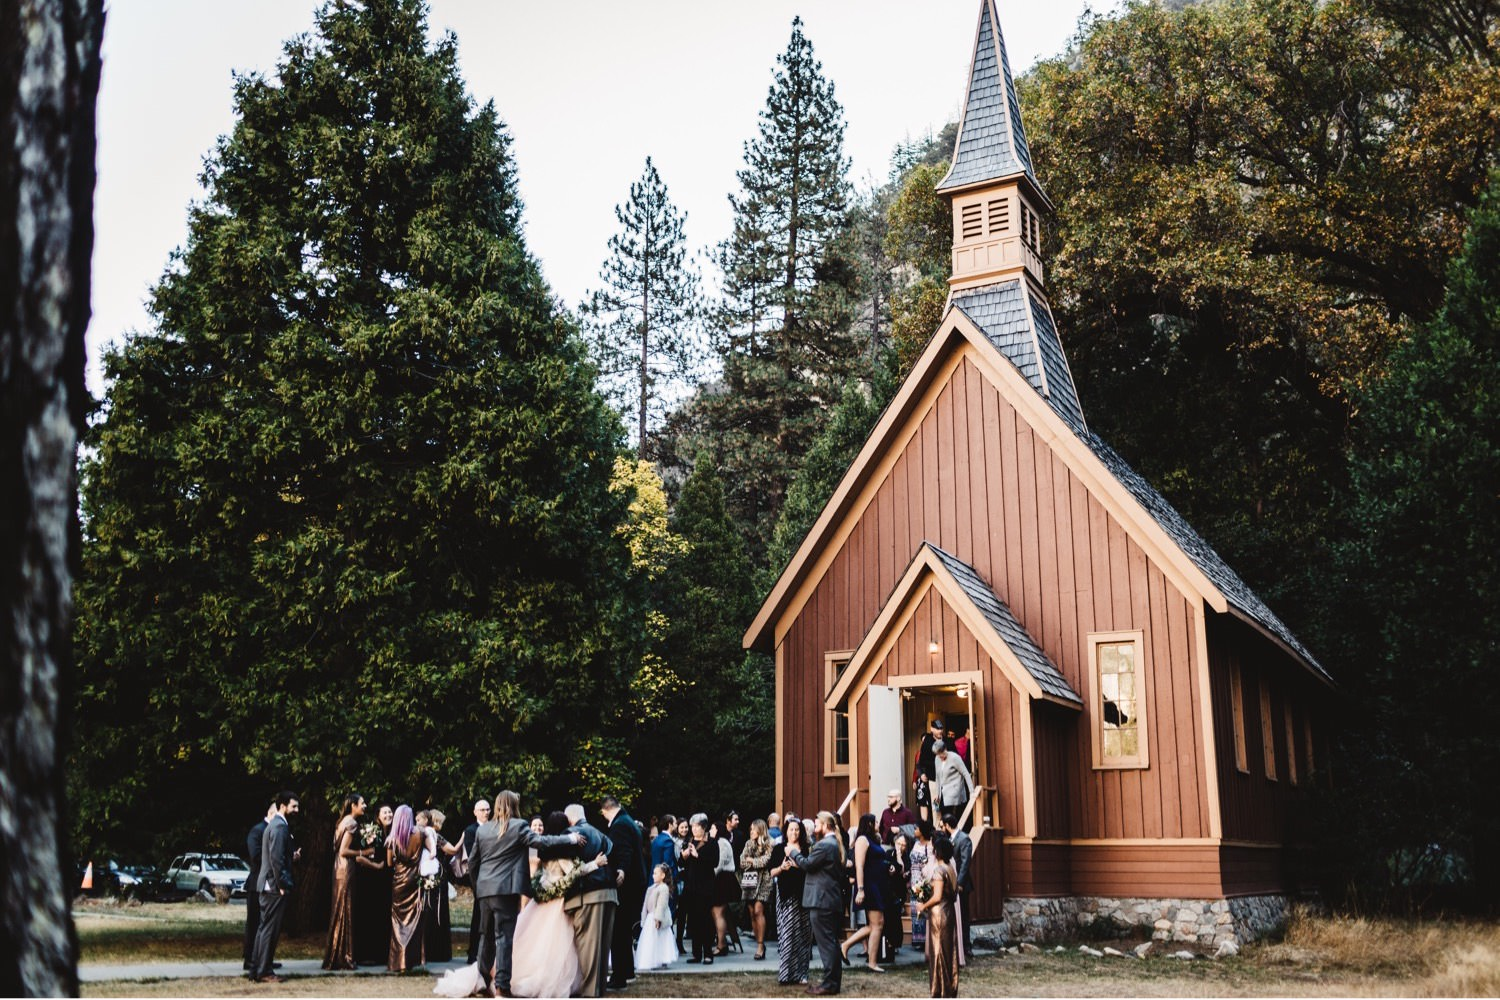 31_alex+matt-wedding-220_park_national_elopement_wedding_yosemite_intimate.jpg